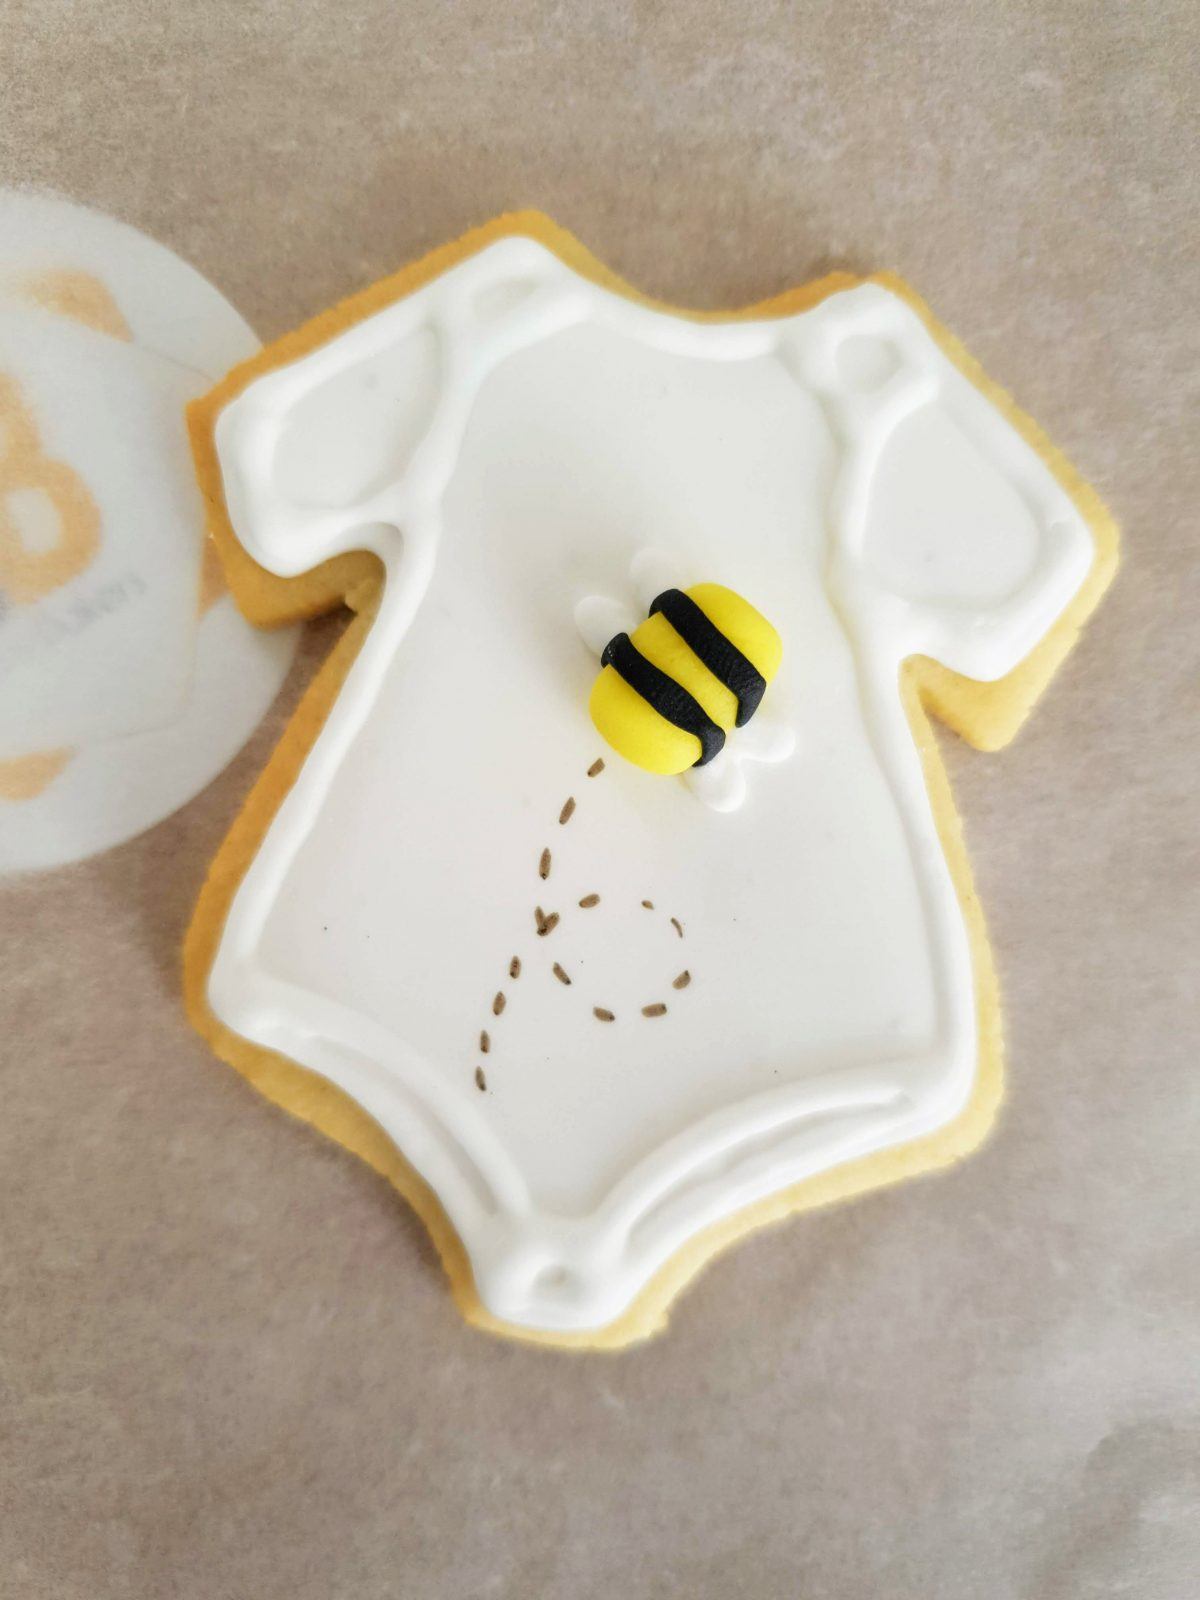 Hand iced and packaged babyshower biscuits baked by Bloom Bakers